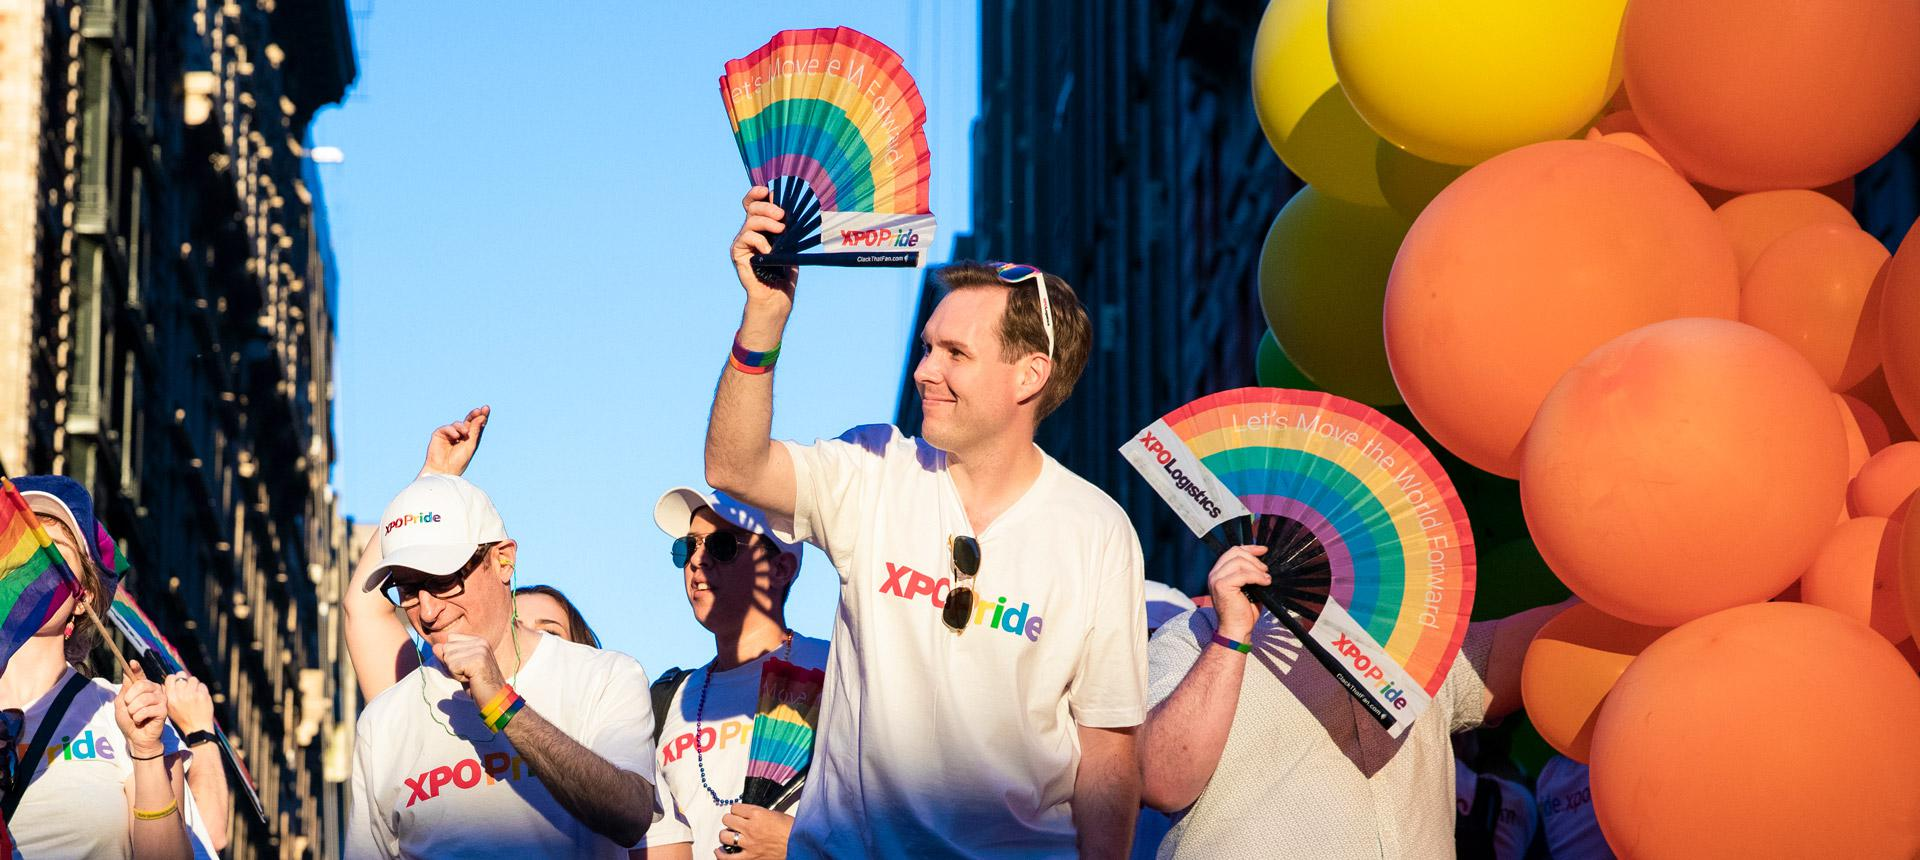 Employees on Pride float